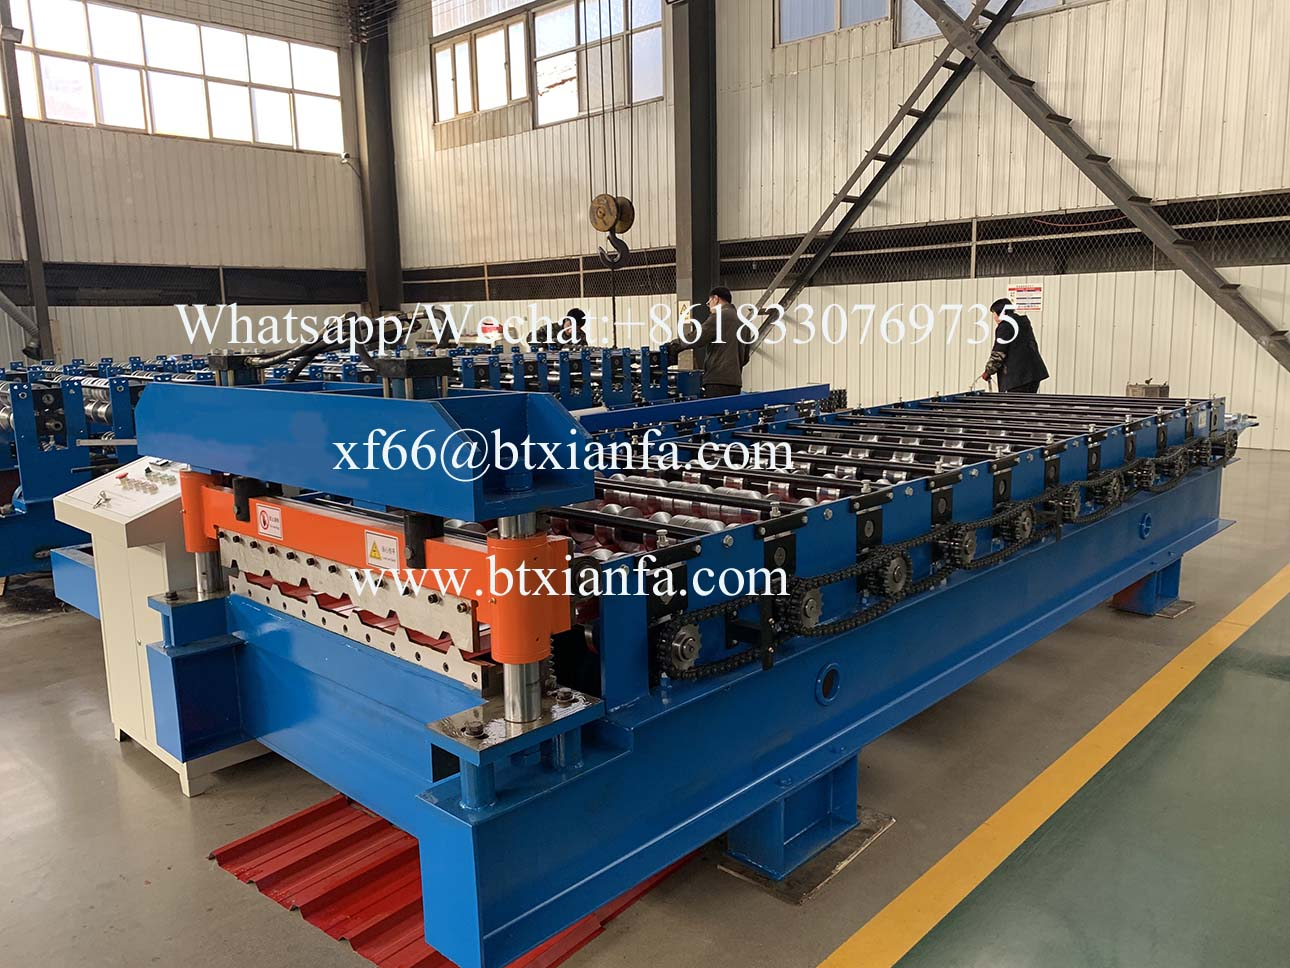 IBR metal roof machines